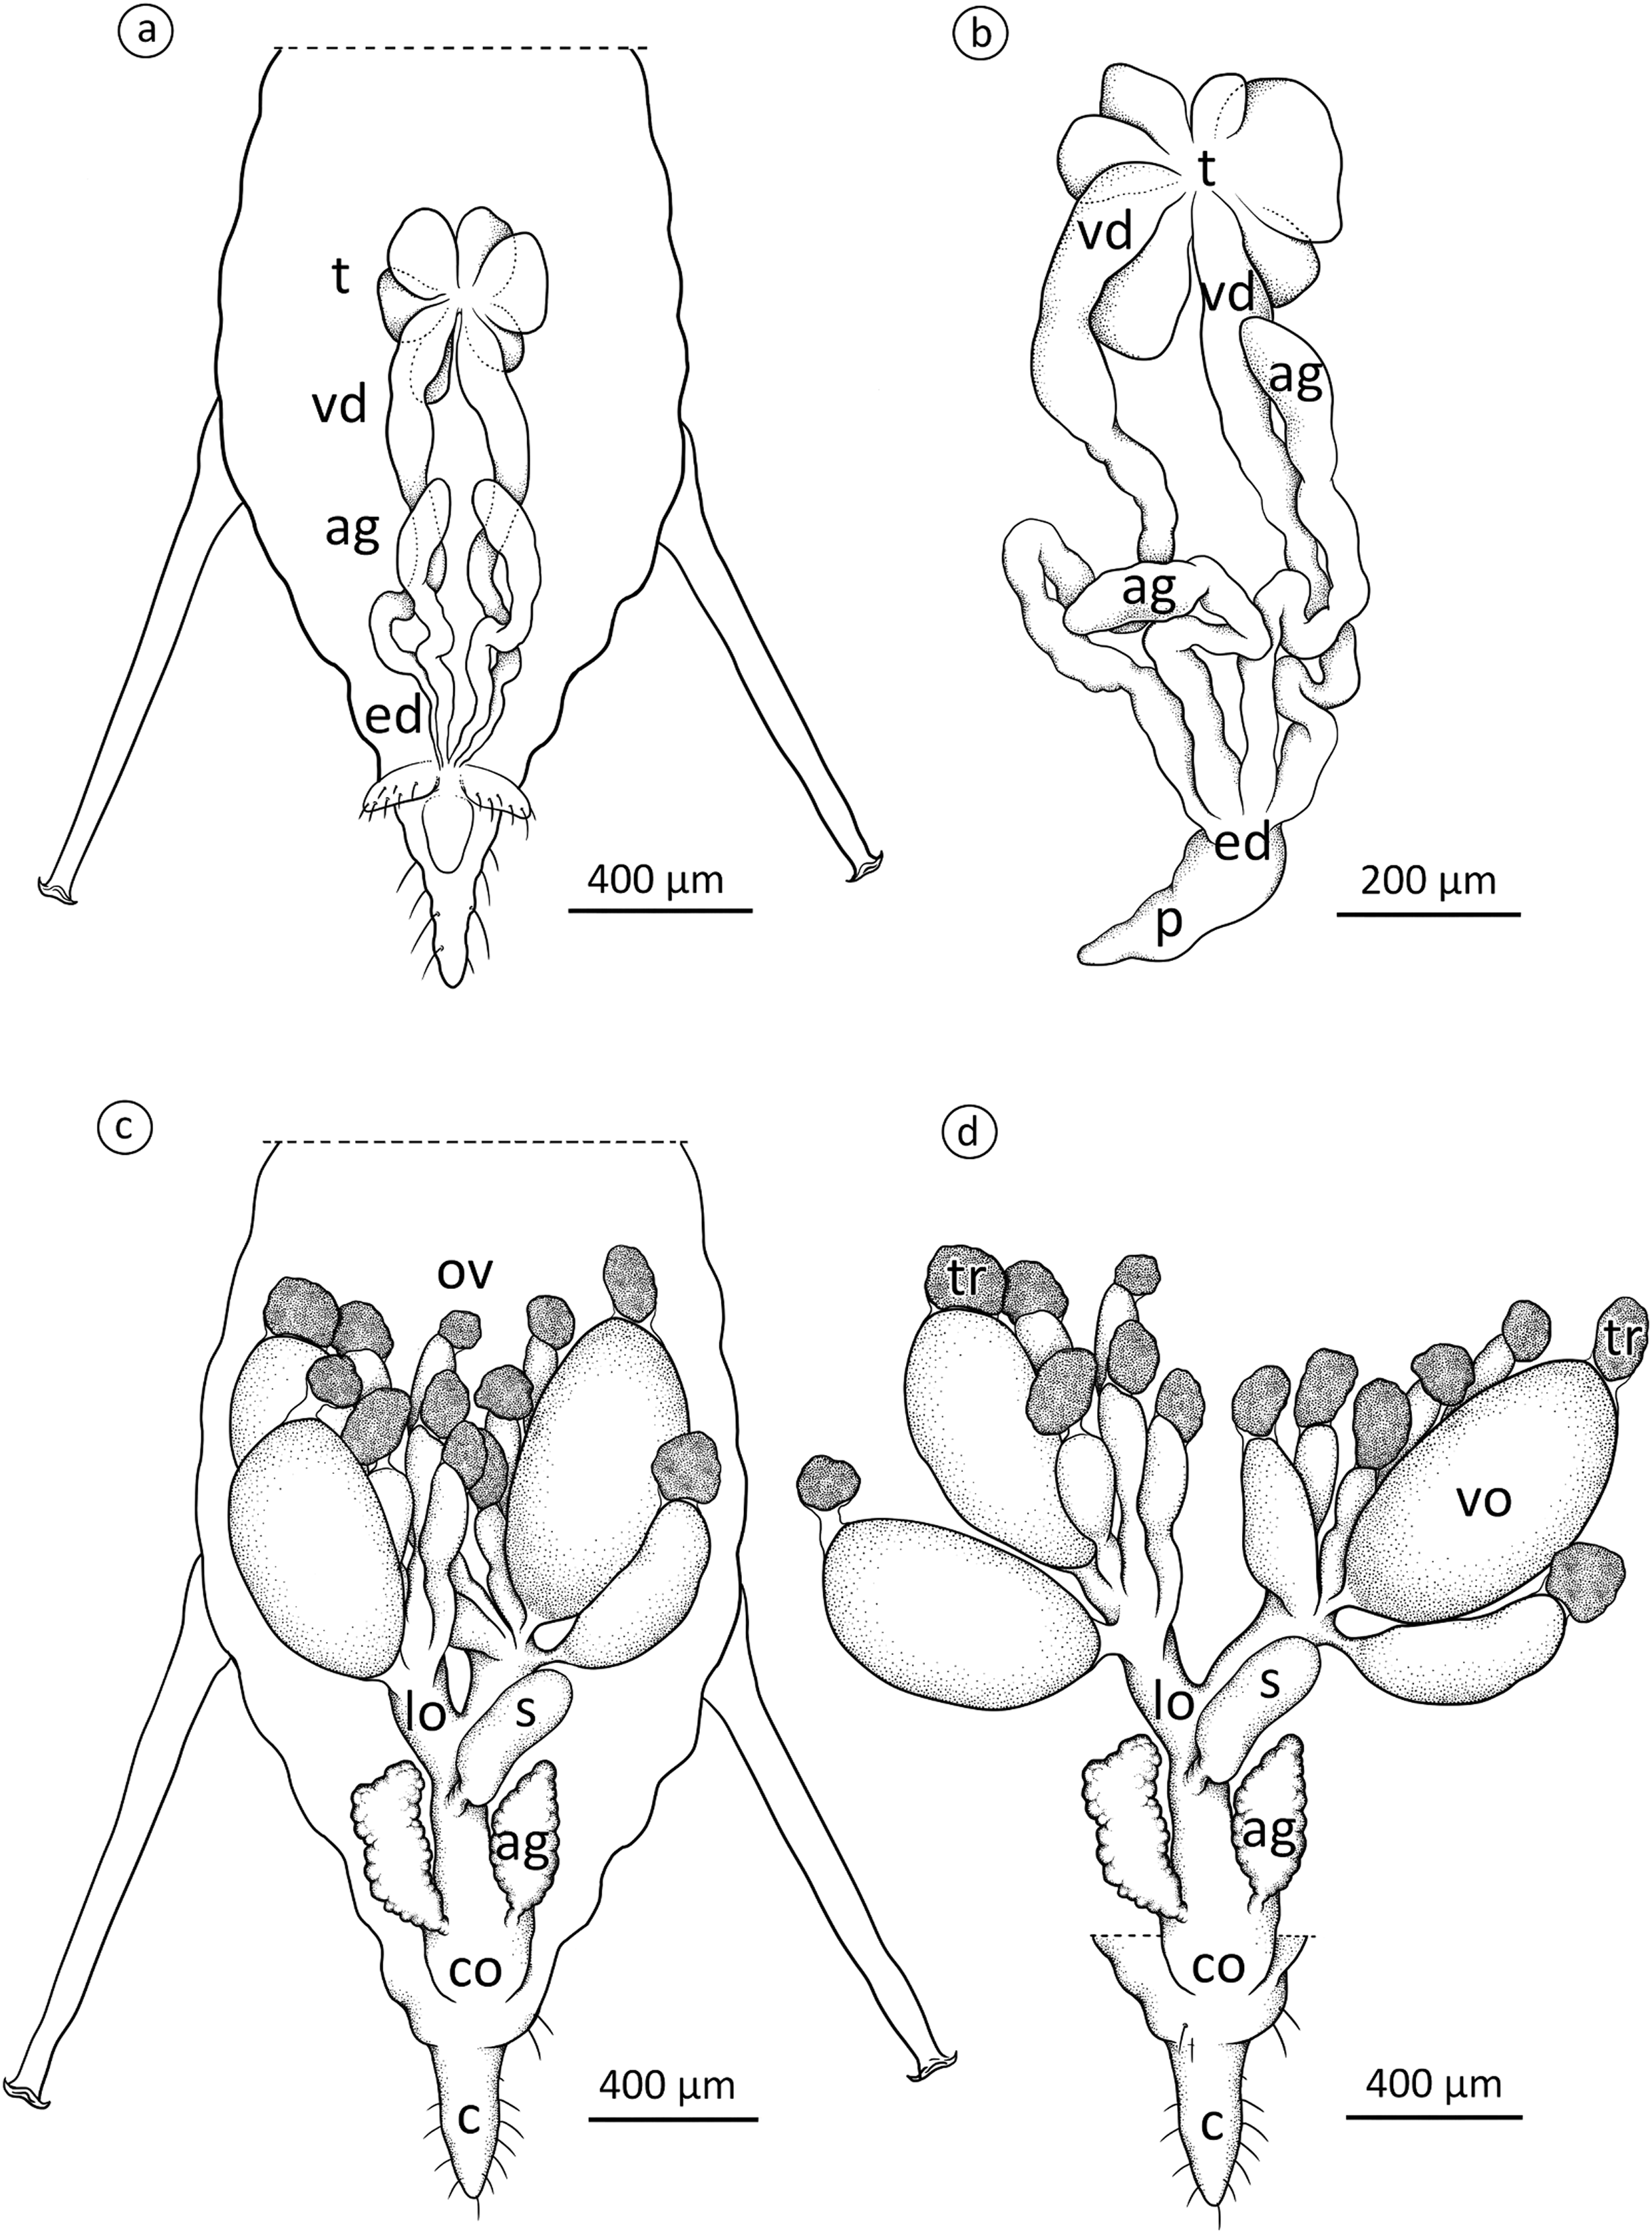 The reproductive system of the male and oviparous female